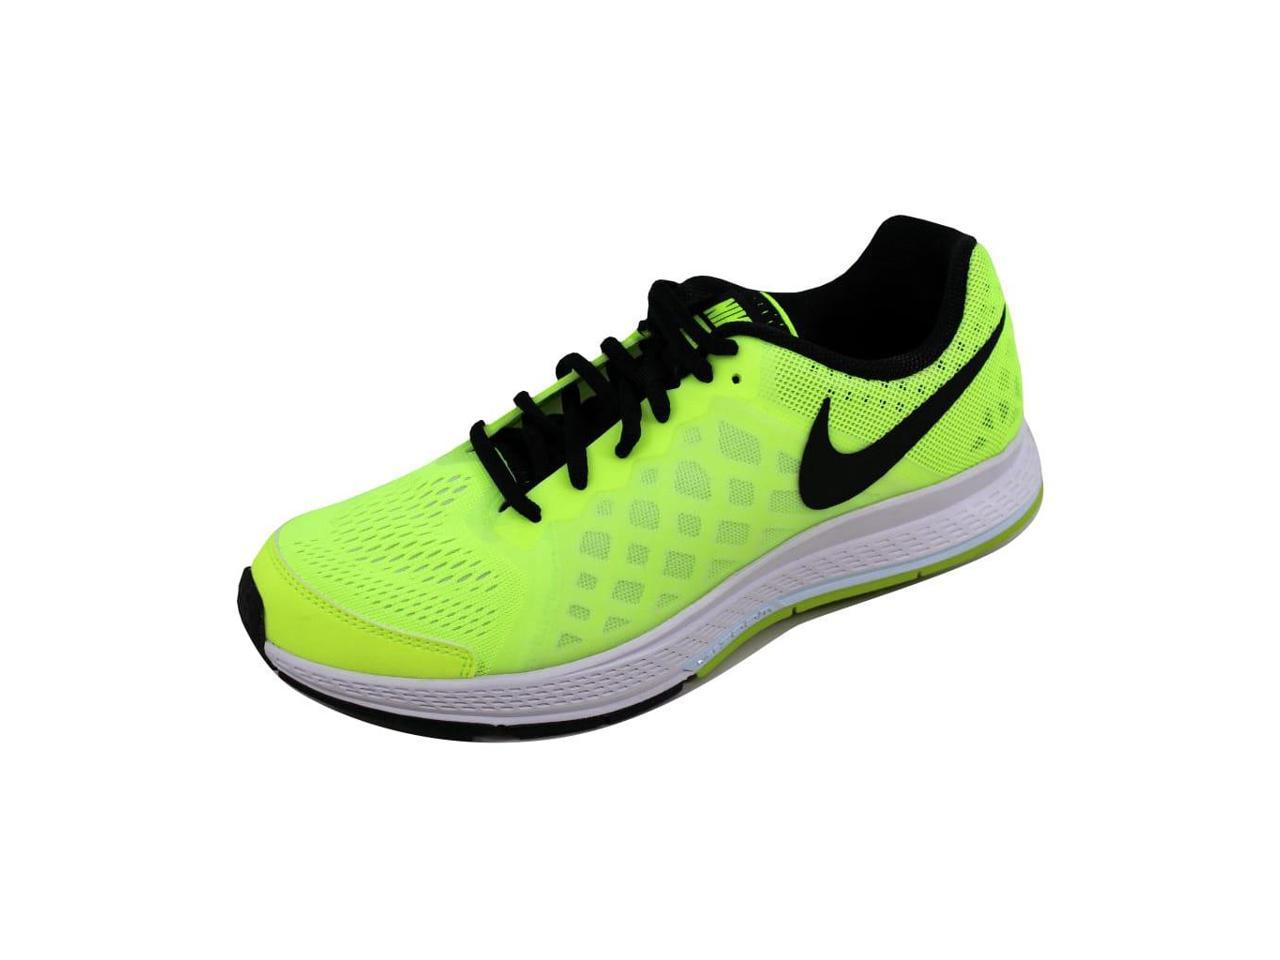 Nike Cool Grade-School Zoom Pegasus 31 Cool Nike Grey/White-Electric Green 654412-700 Size 7Y fa53fa